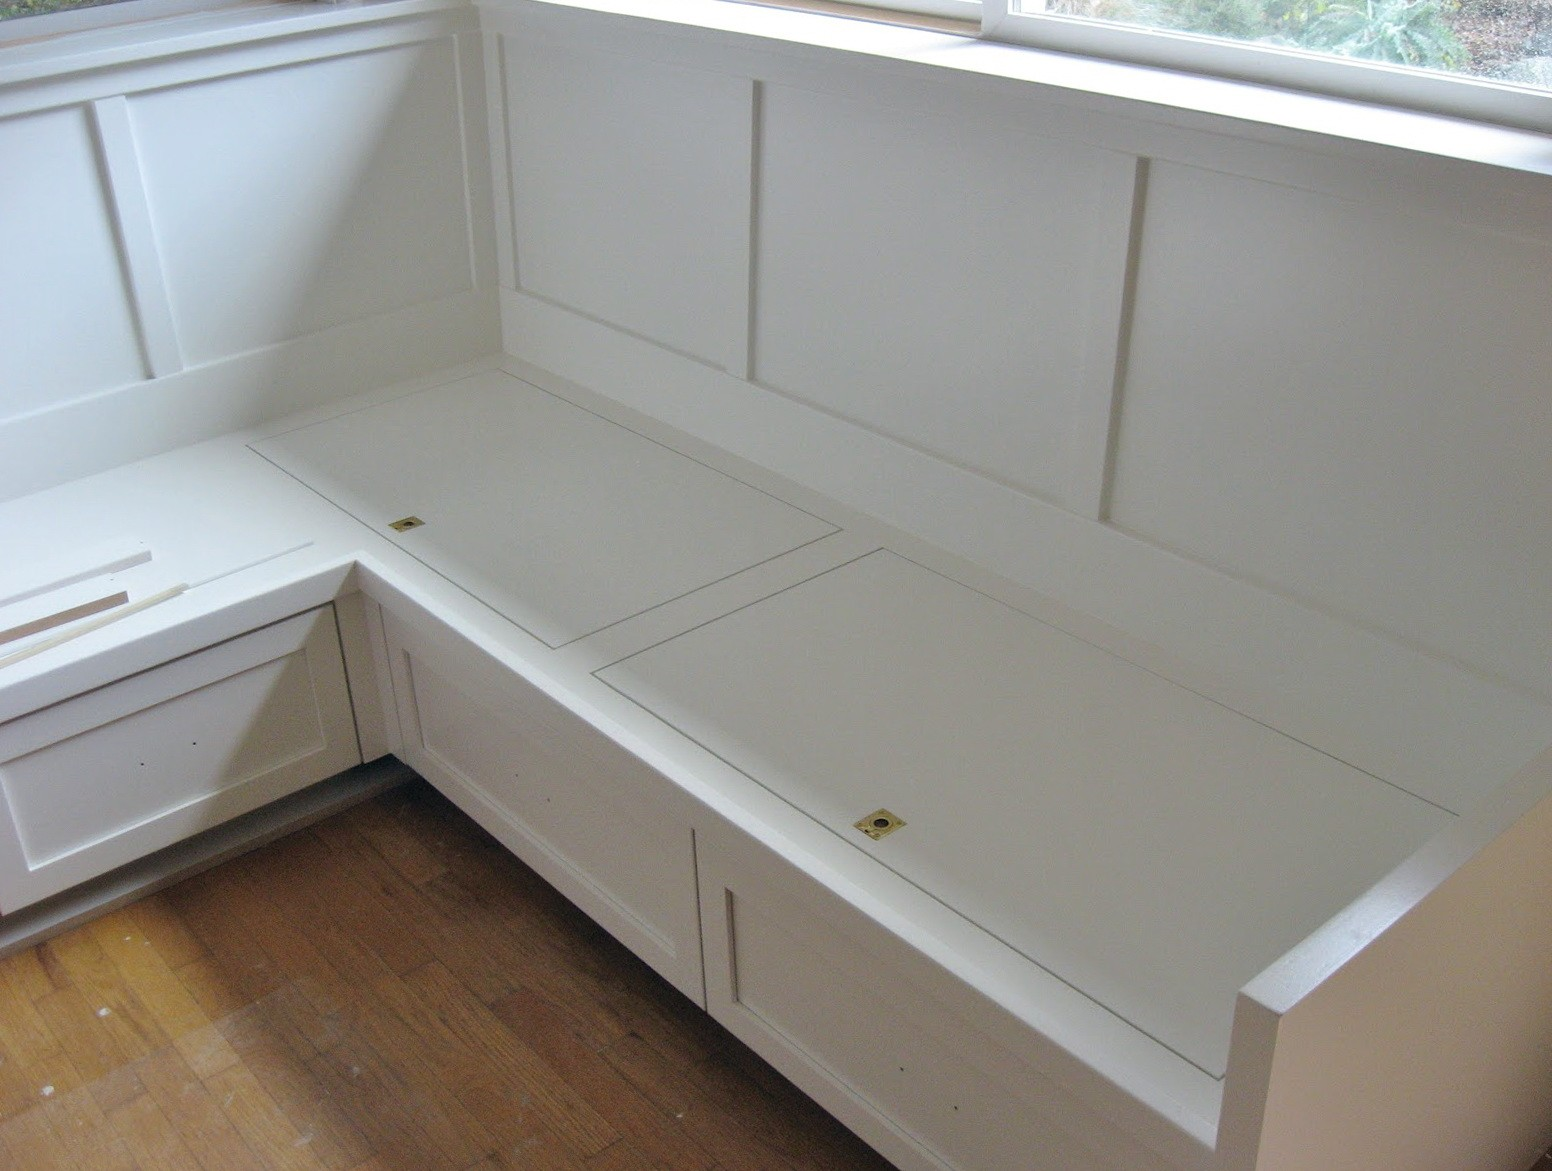 14. Ideal Kitchen Bench For A Large Family